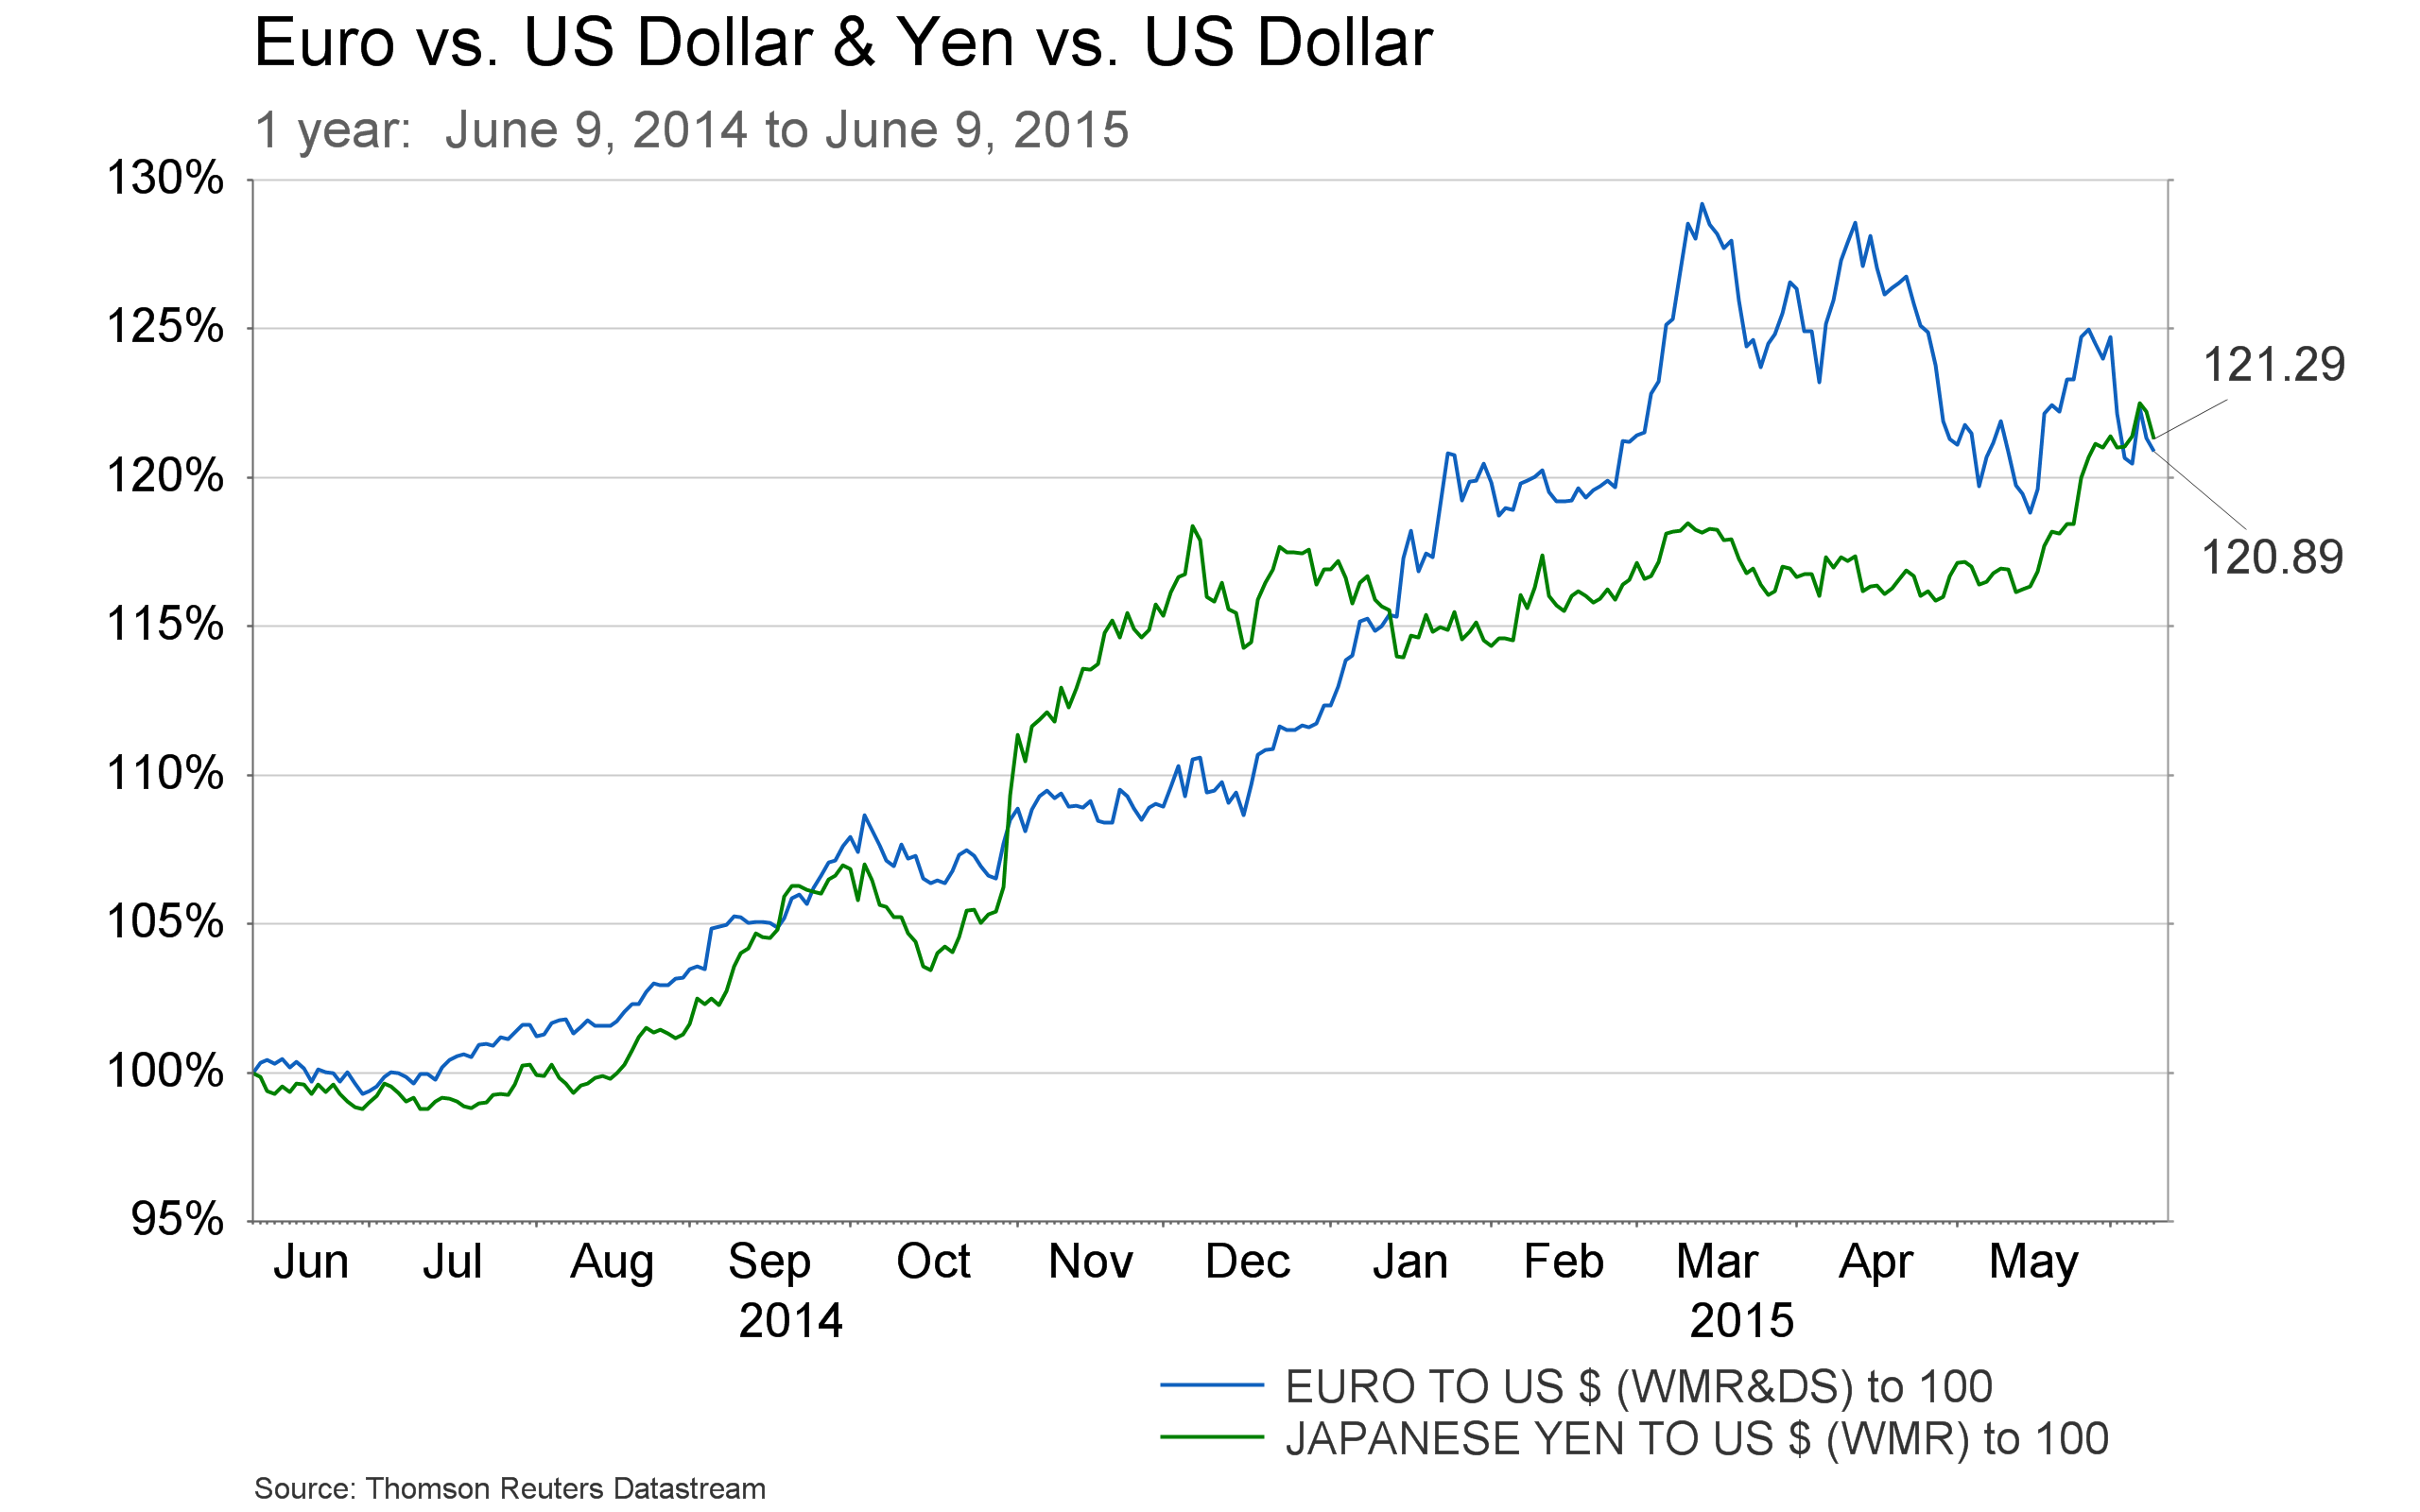 June 9 -  Euro and Yen 1 year